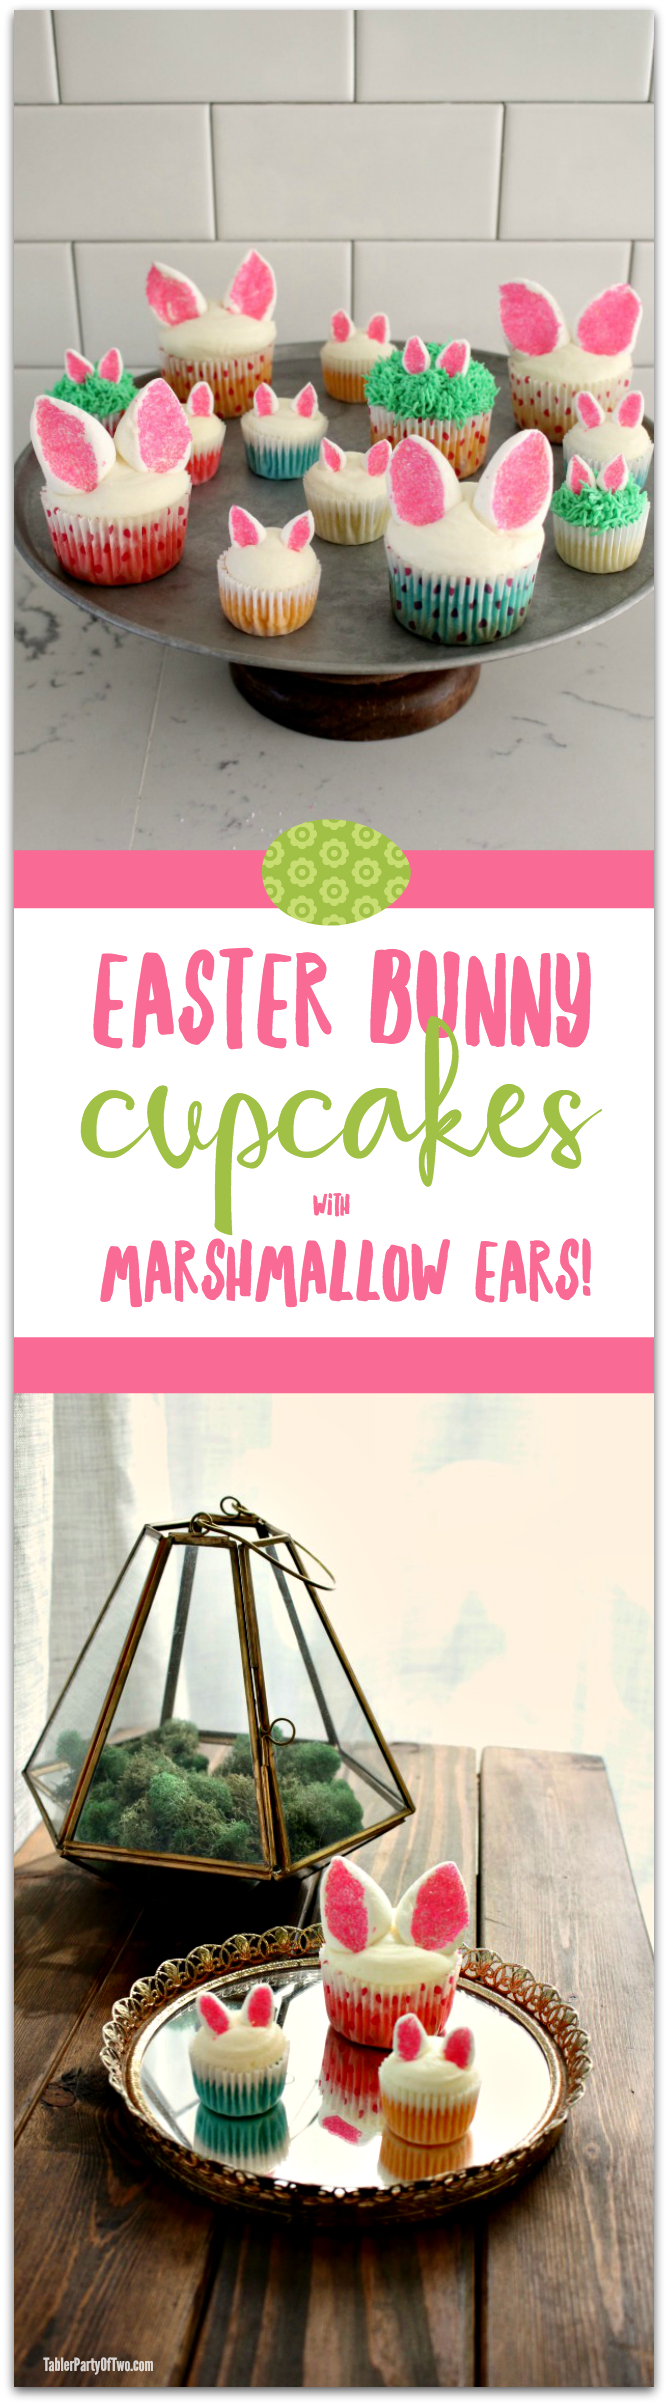 Easter-Bunny-Cupcakes-with-Marshmallow-Ears